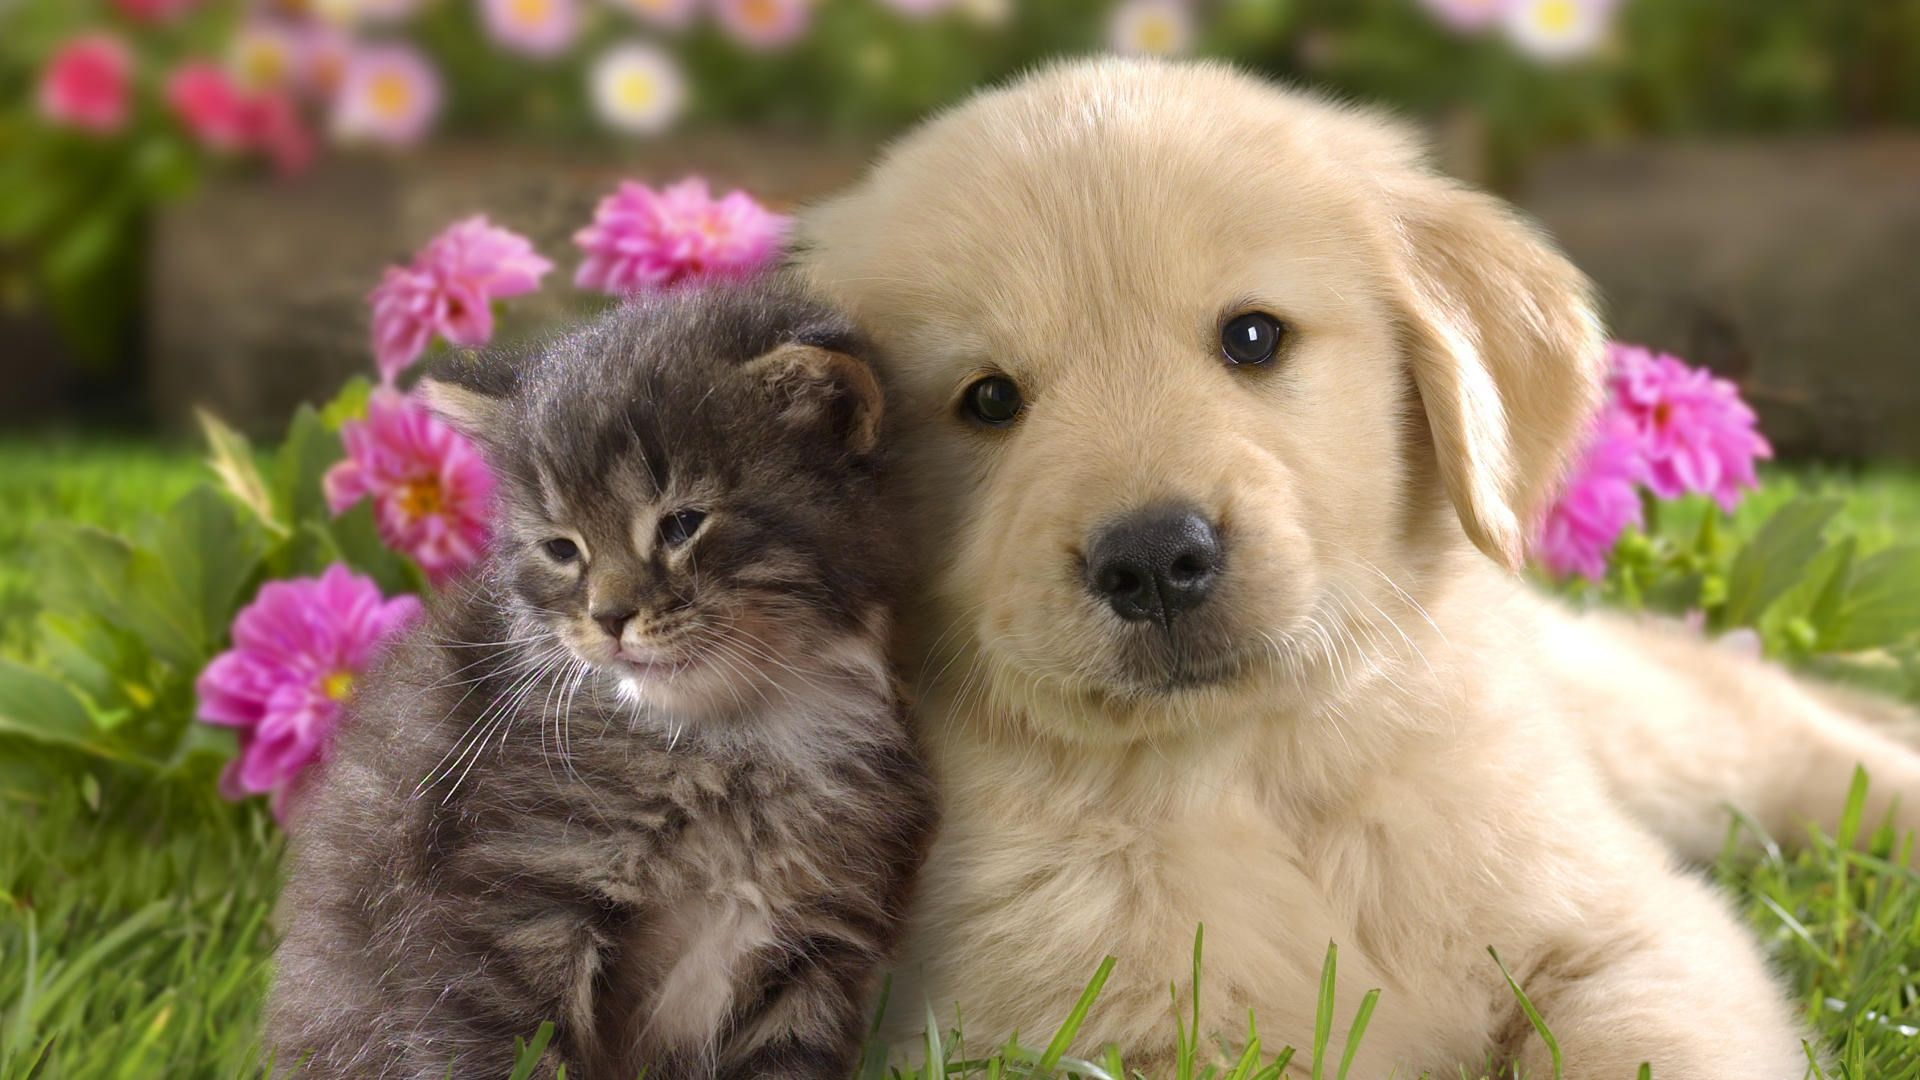 cute puppies wallpapers 4k